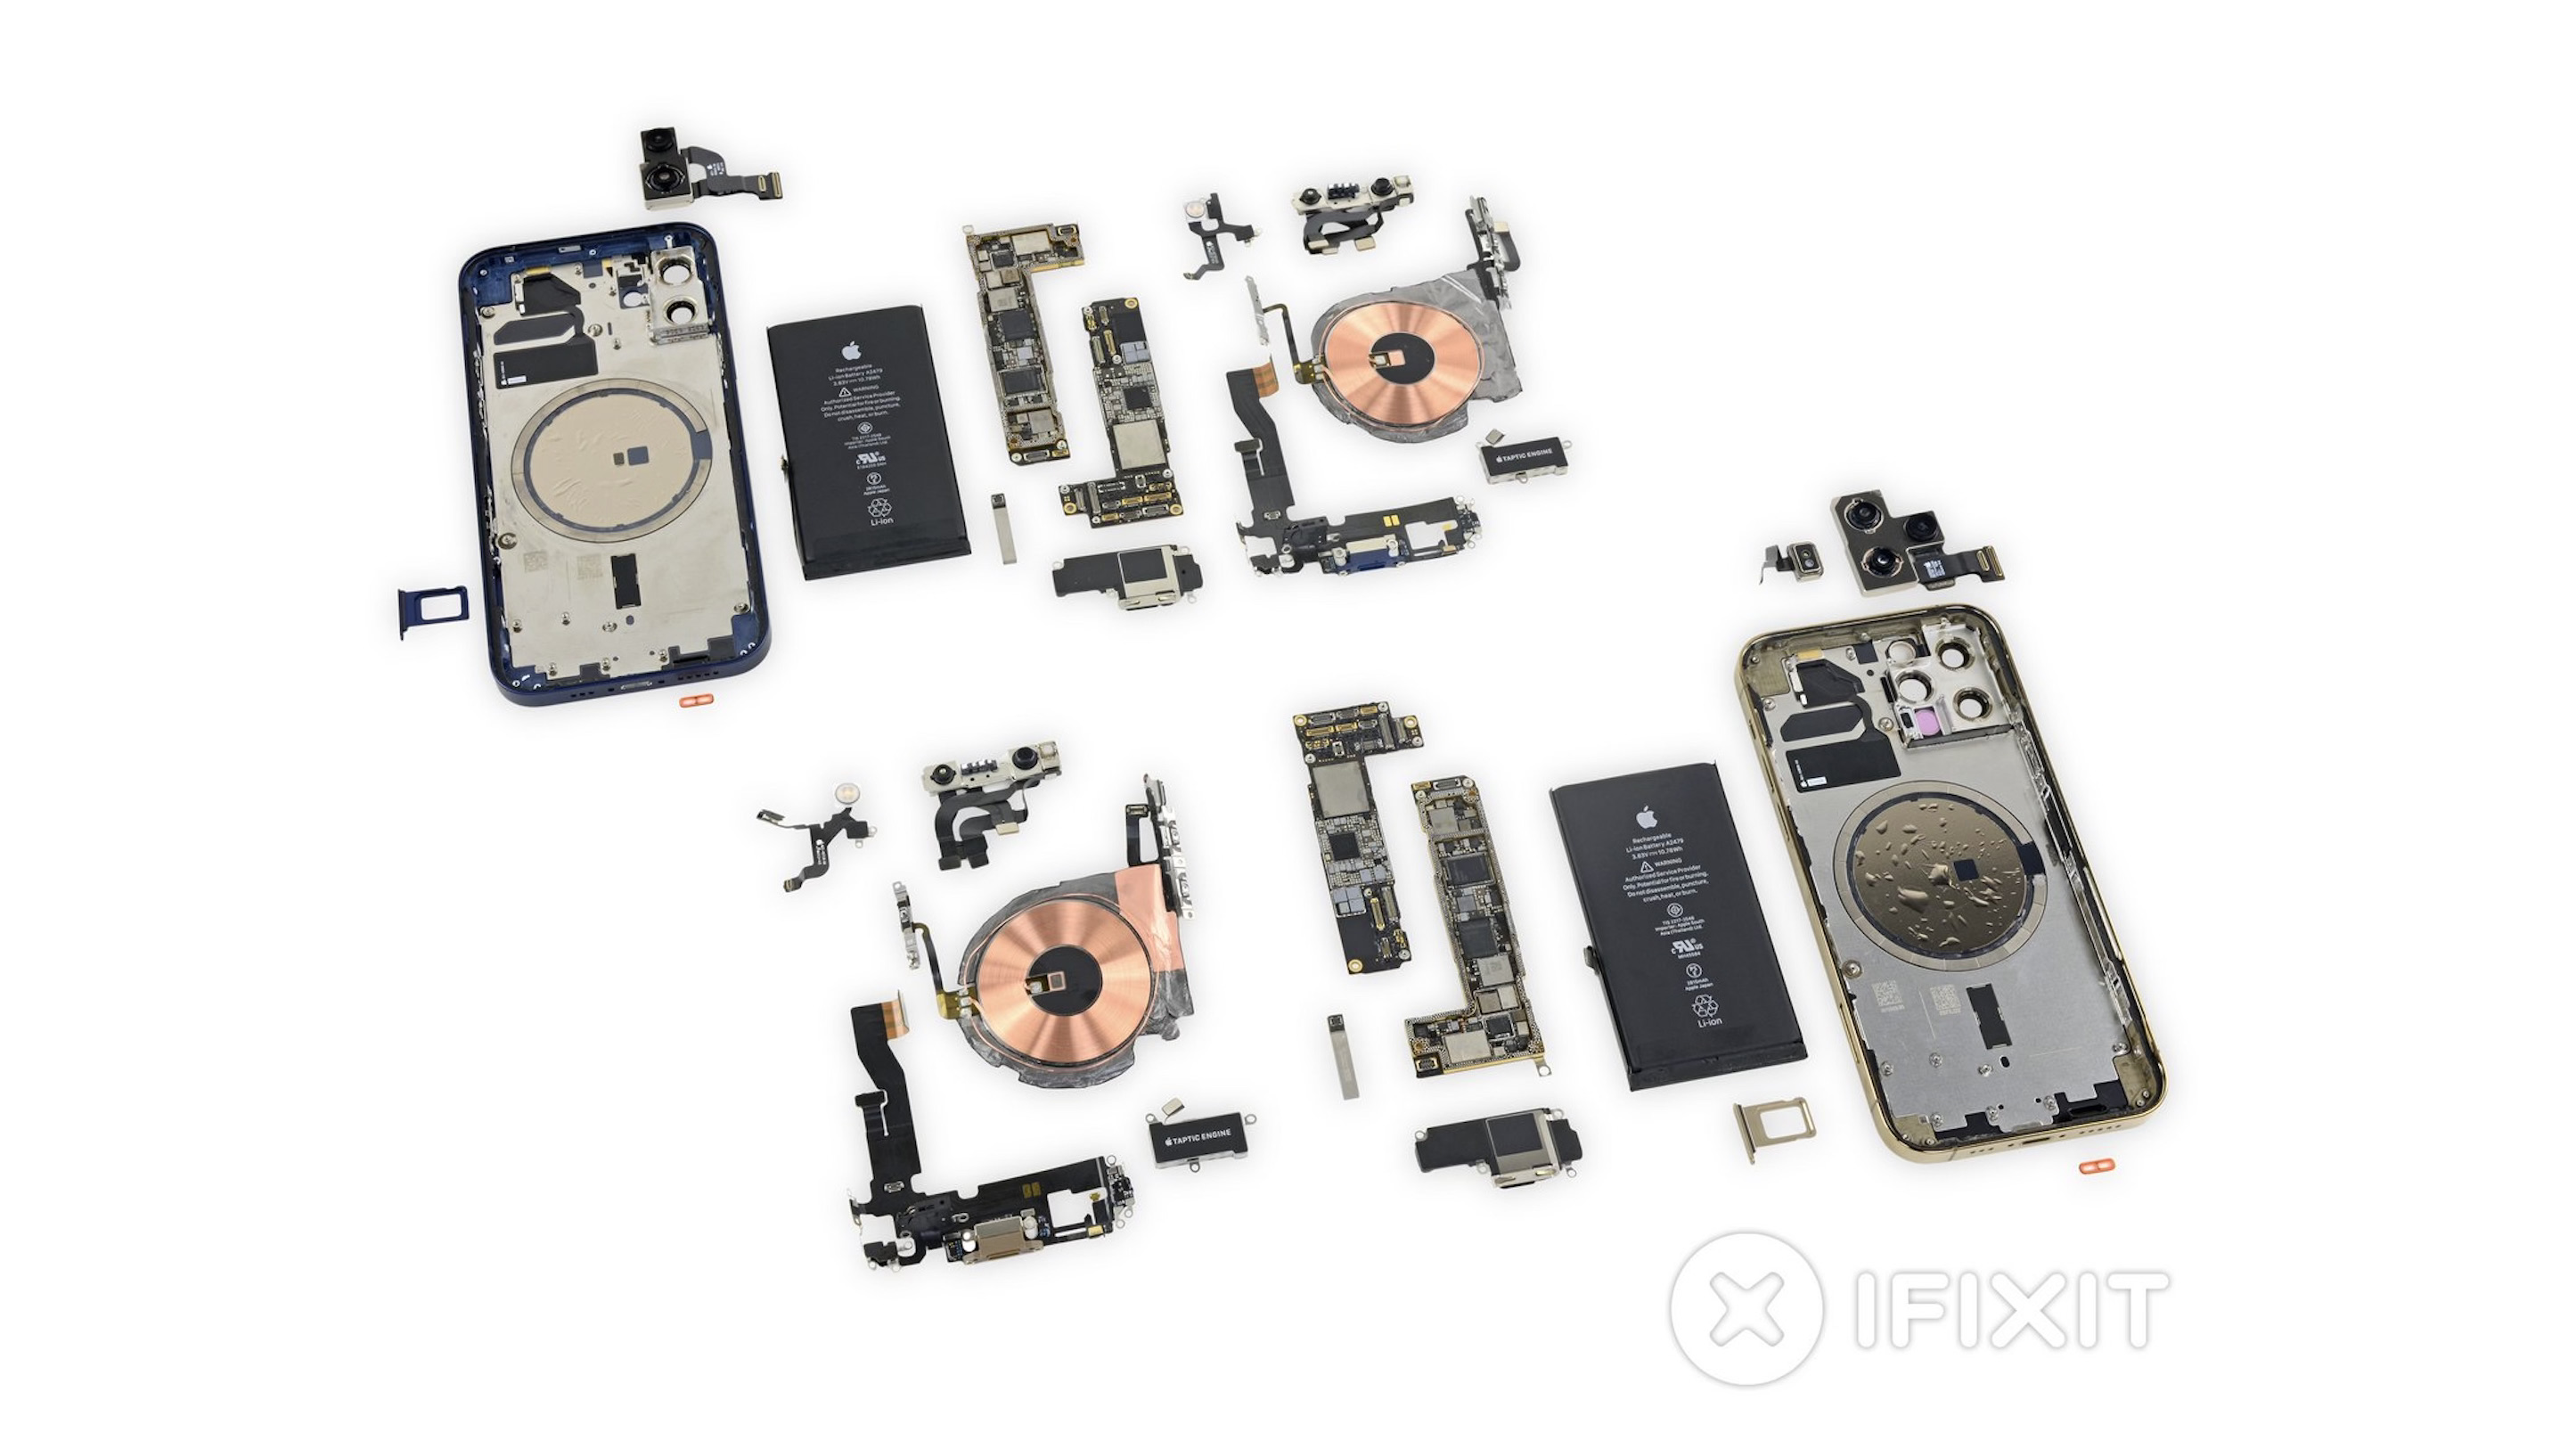 Full iPhone 12 and iPhone 12 teardown from iFixit reveals modular design with interchangeable parts